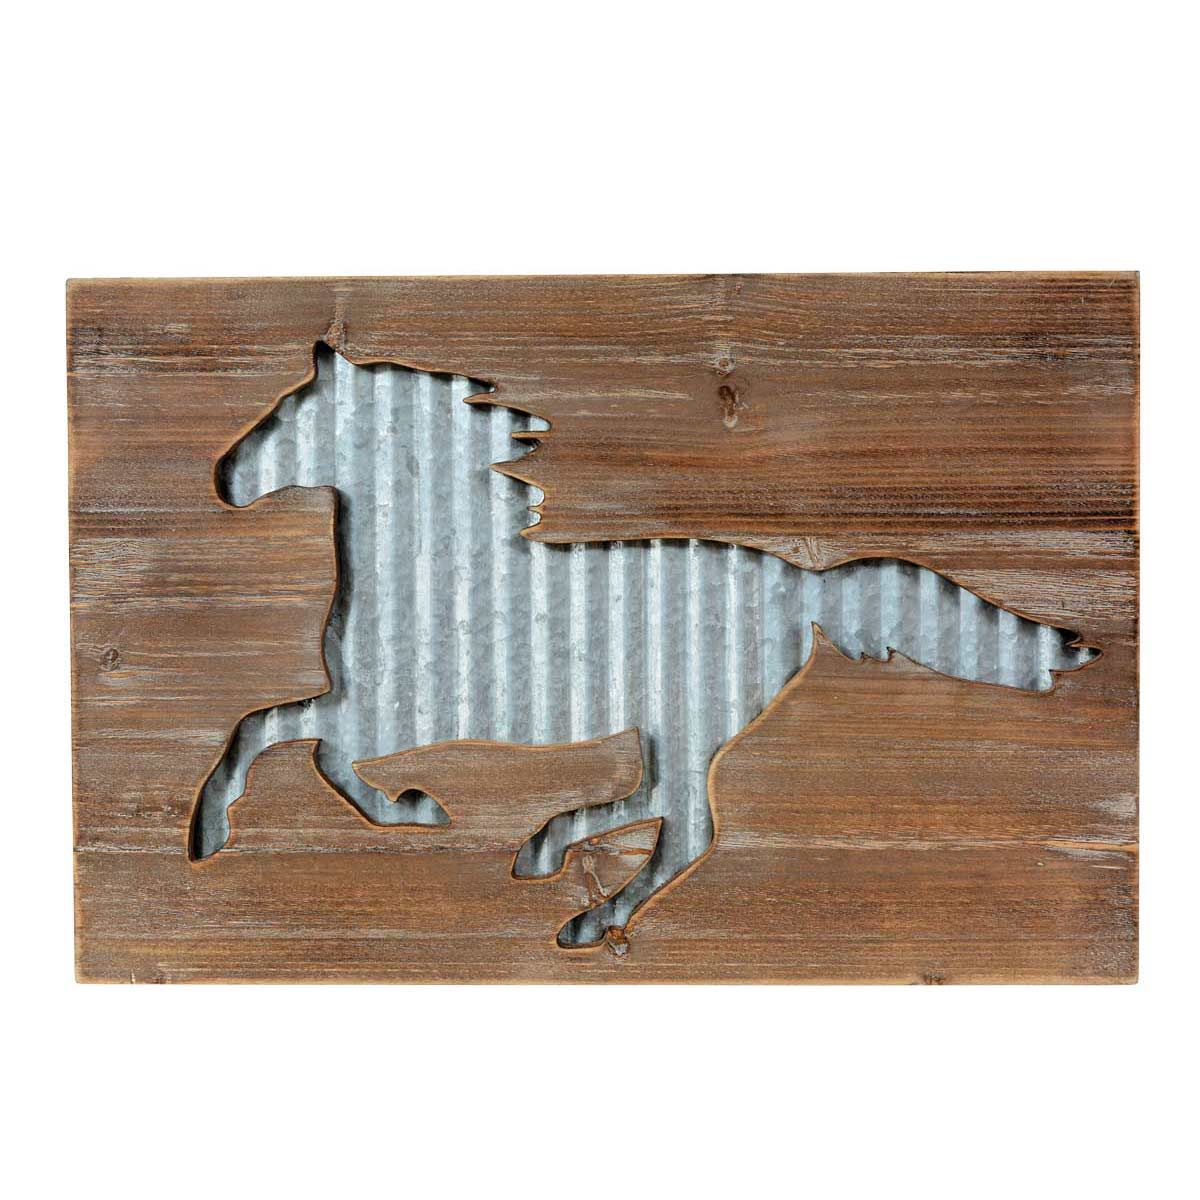 Galloping Horse Corrugated Metal Wall Art